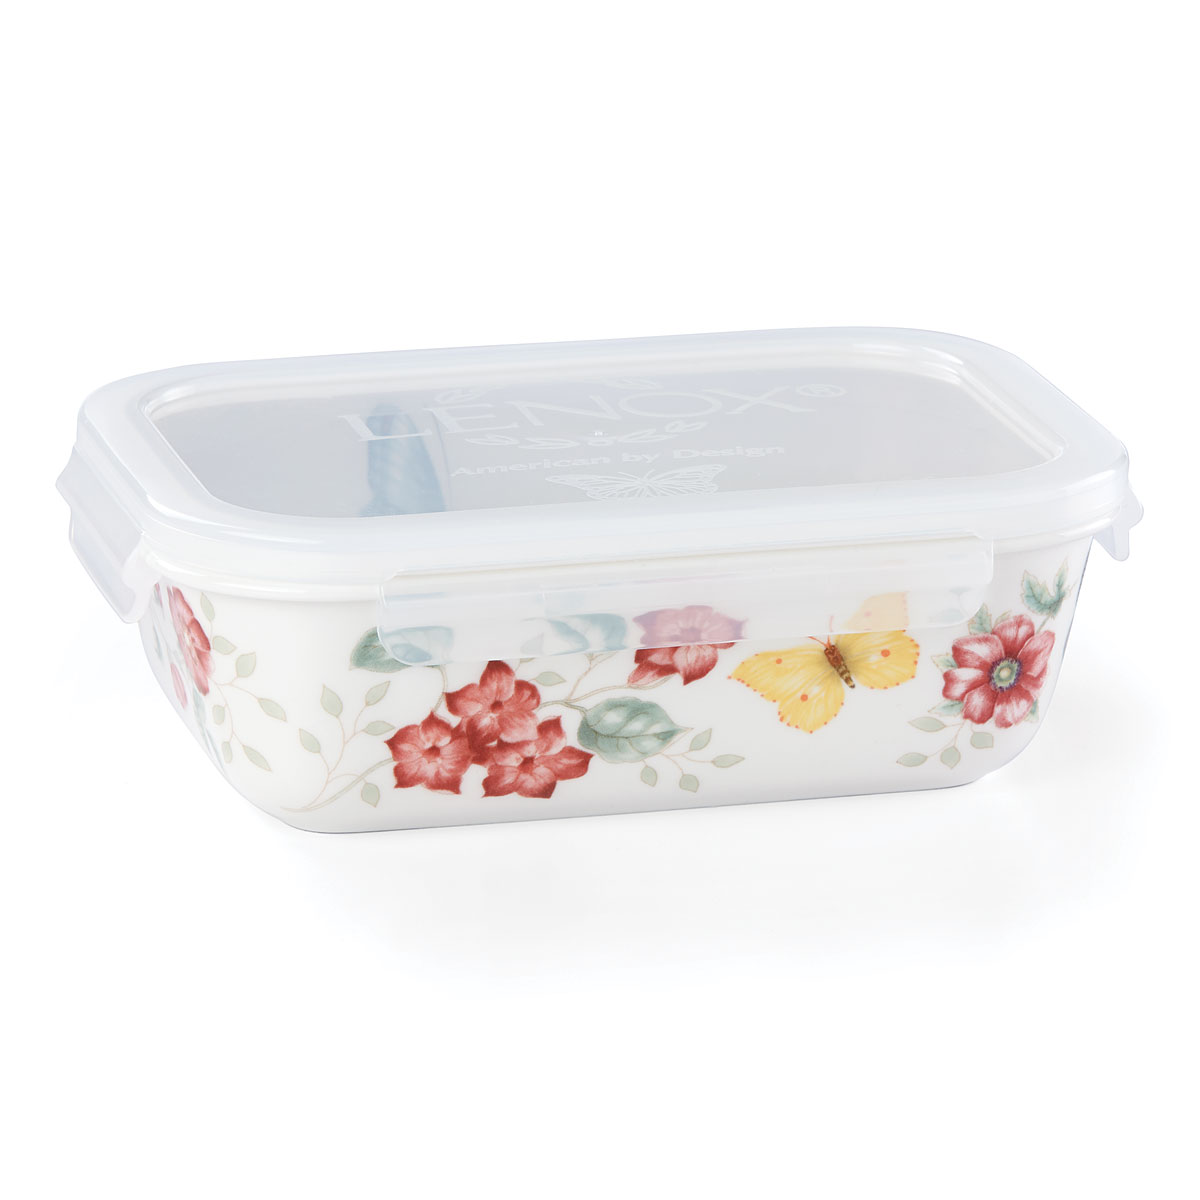 Lenox Butterfly Meadow Dinnerware Rectangular Serving and Storage Container